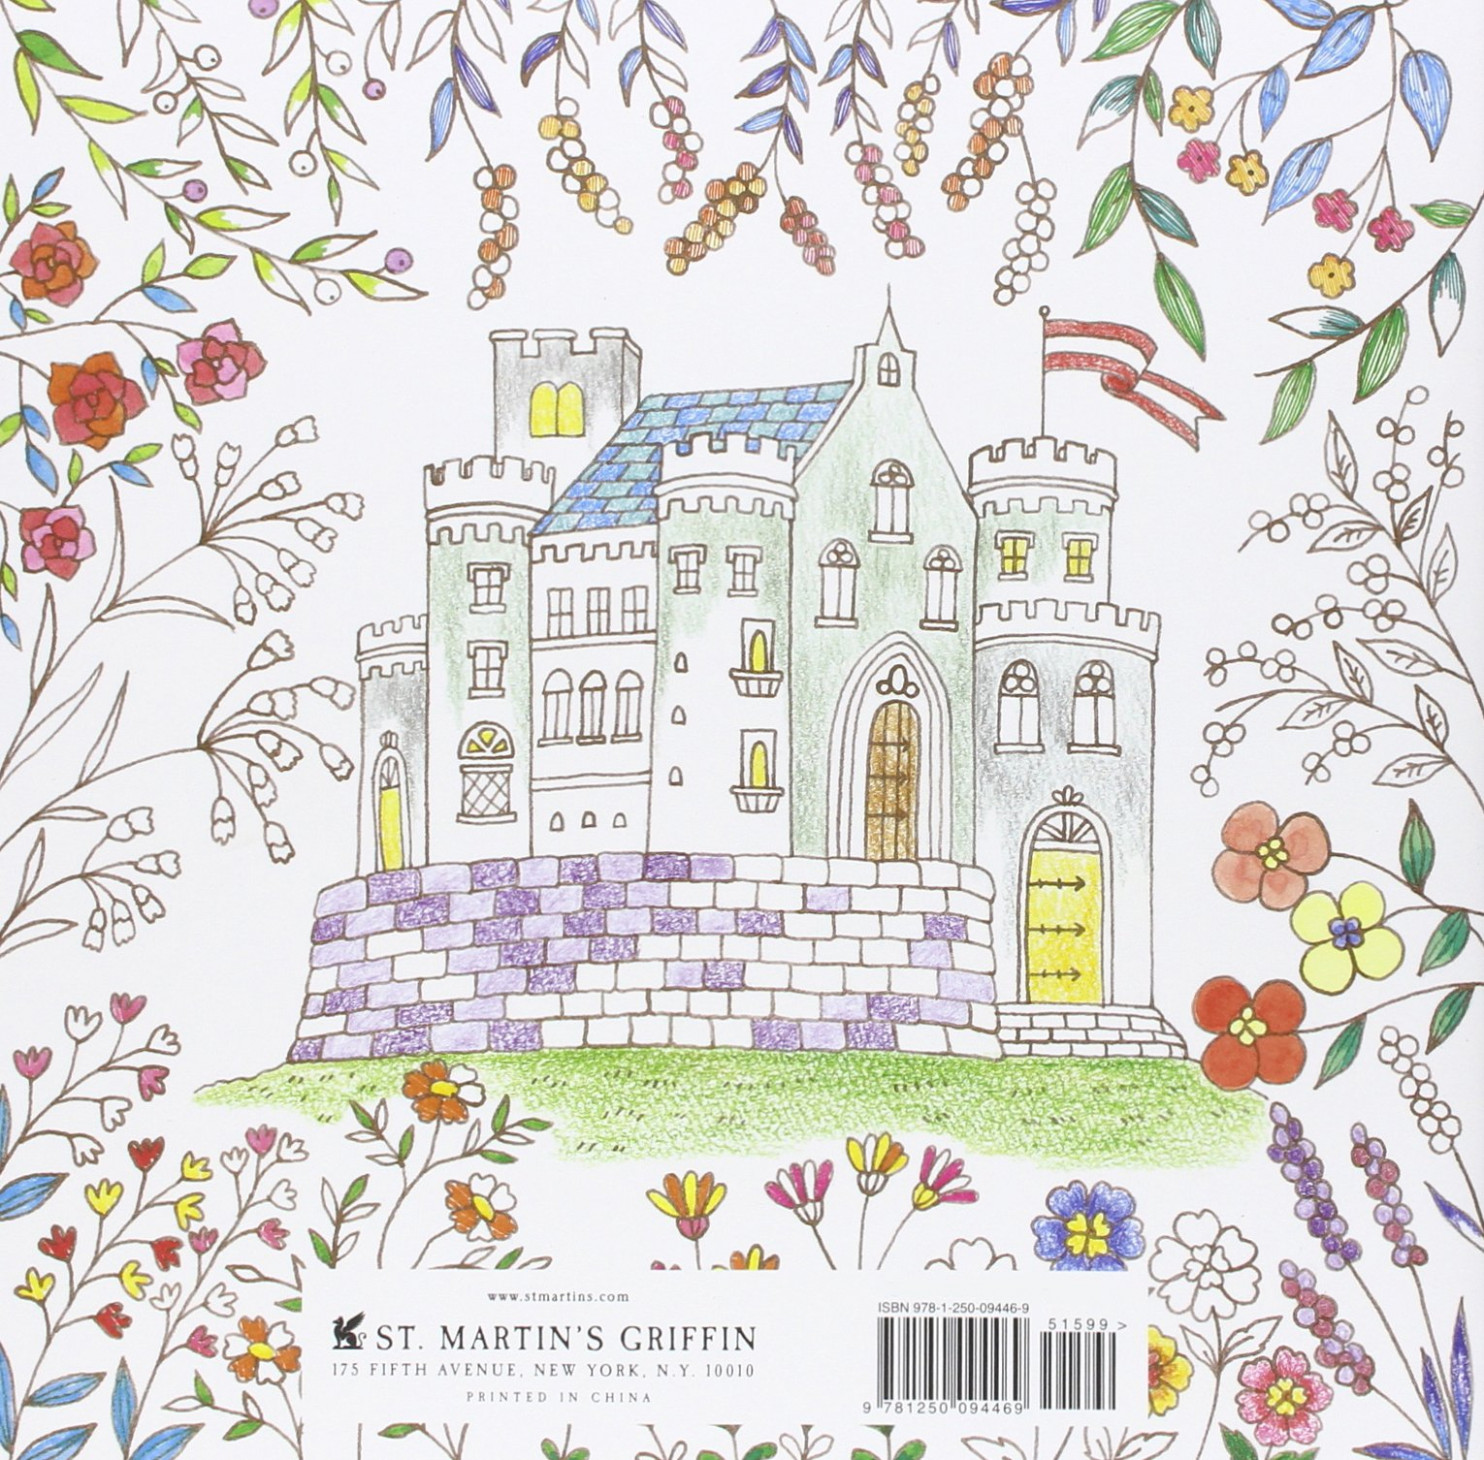 Amazon.com: Romantic Country: A Fantasy Coloring Book (14 ..